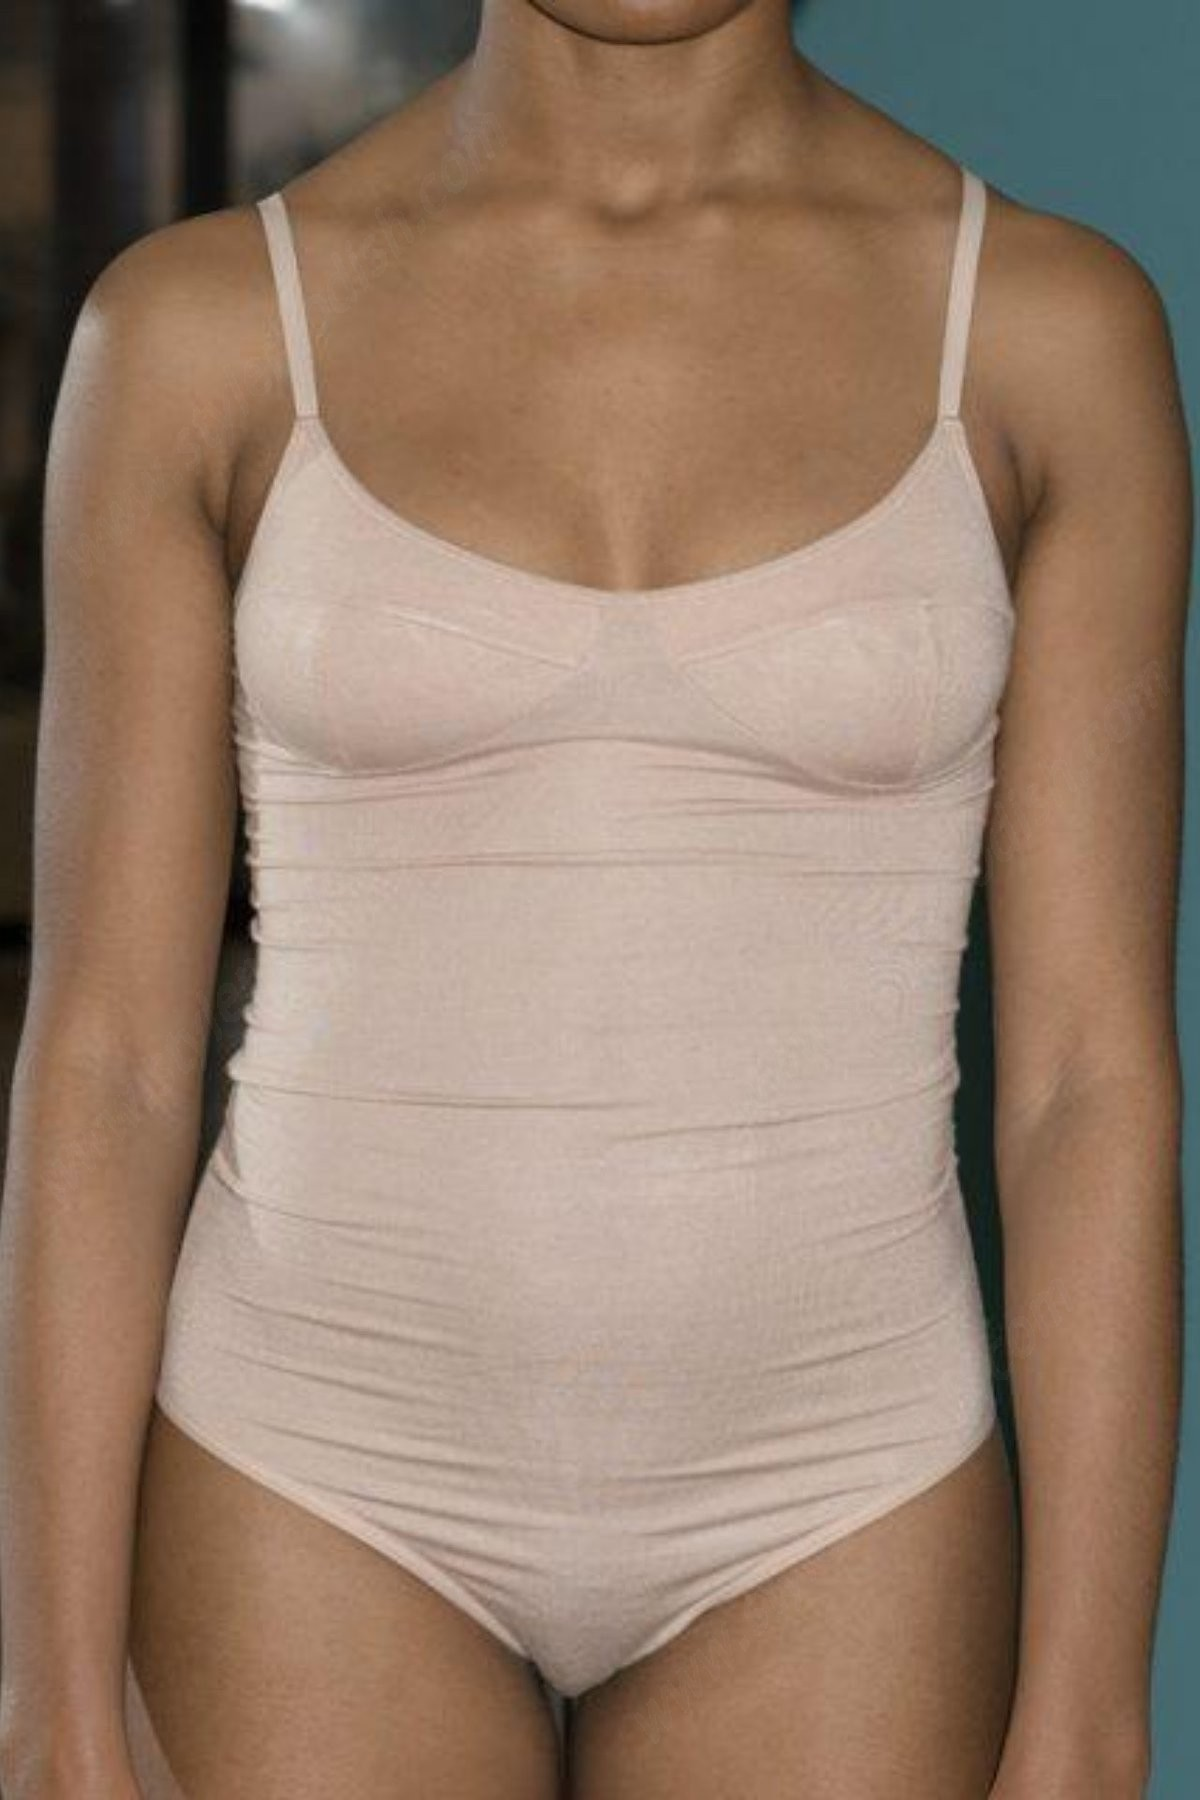 Woman's Baserange Body With Bra - Woman's Baserange Body With Bra